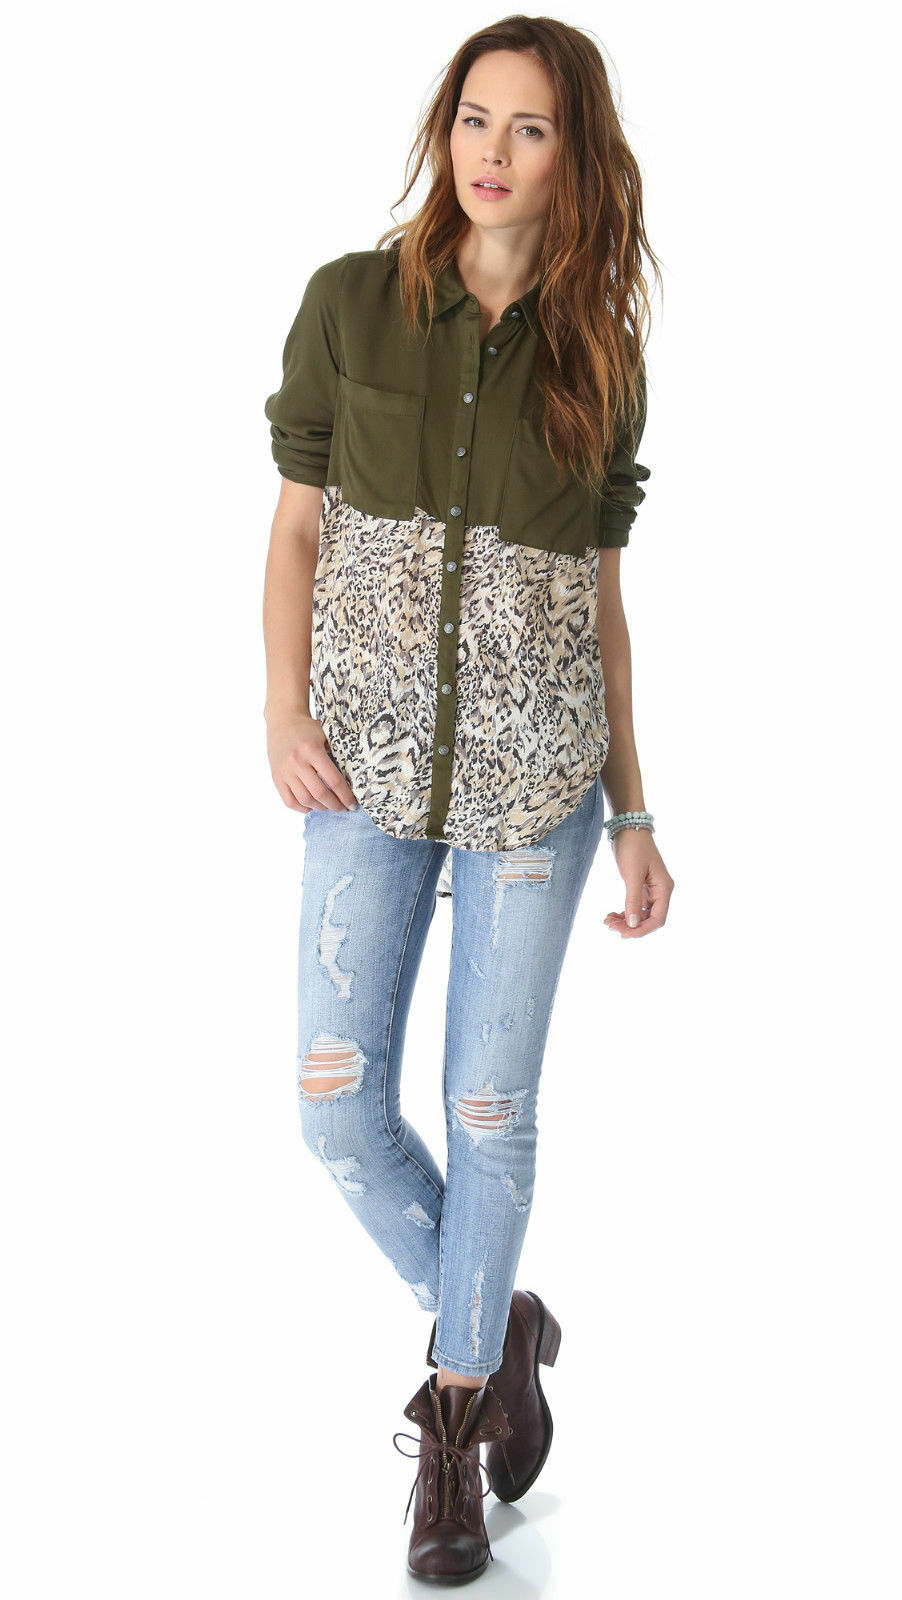 NWT Free People Welcome To The Jungle Top Shirt Army Combo Größe S